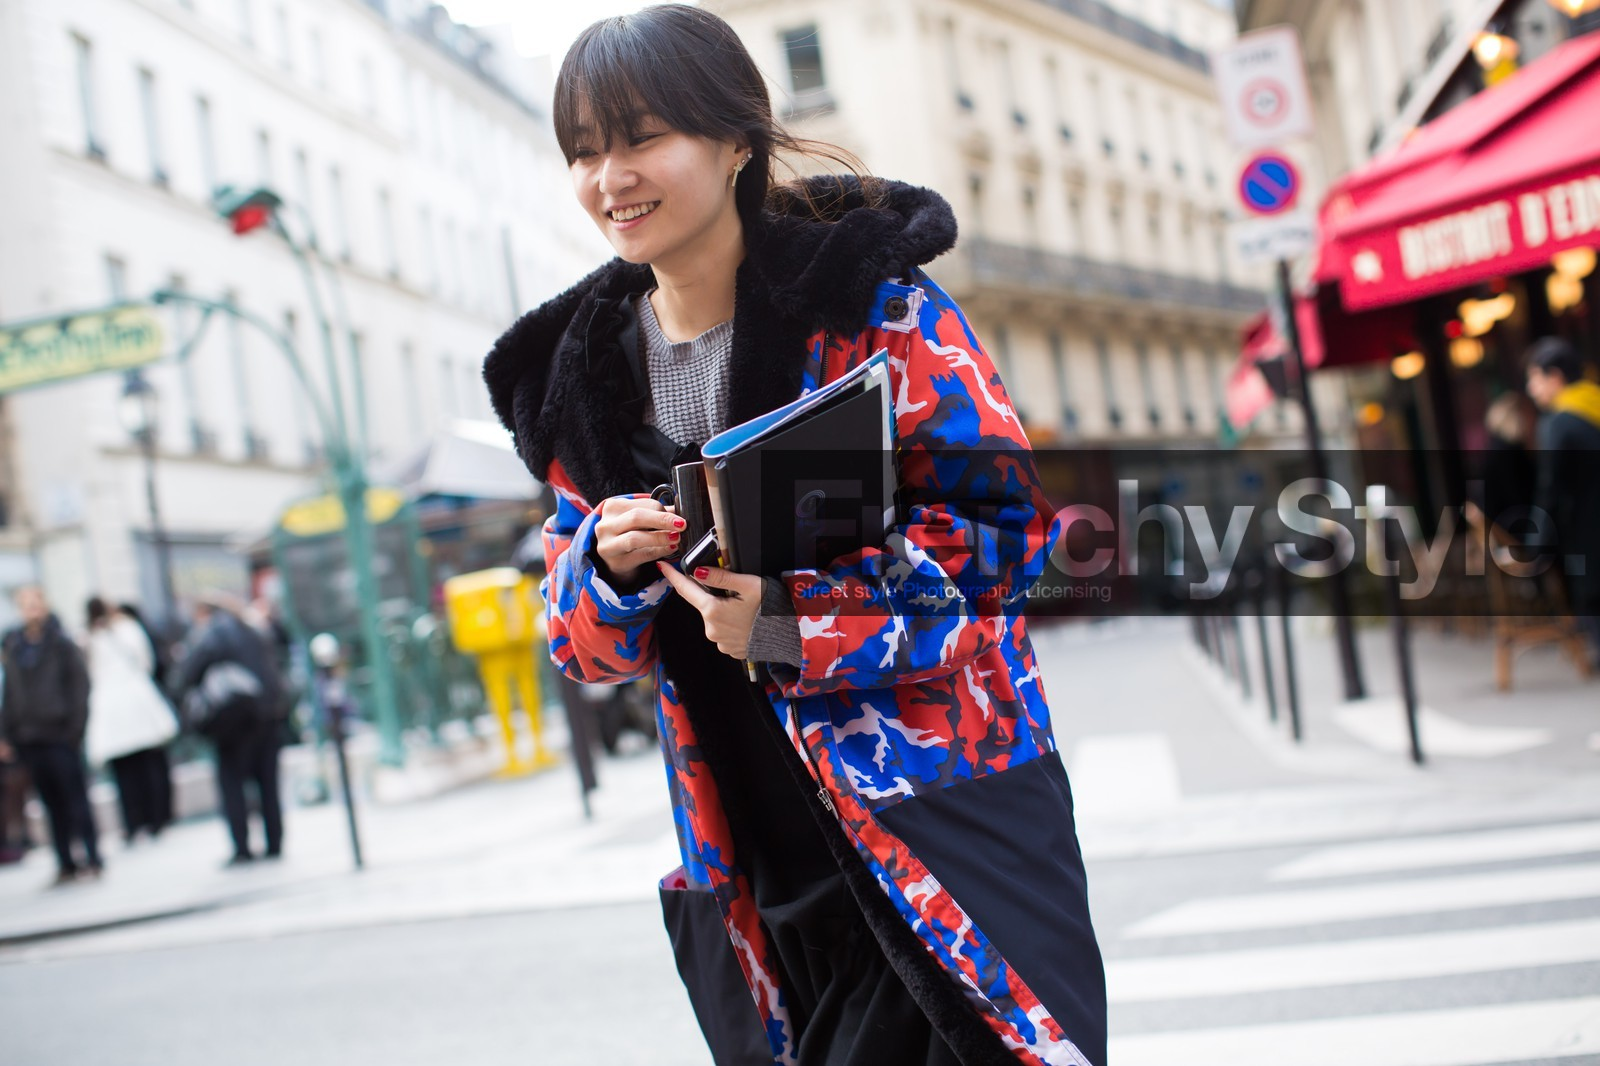 Autumn-winter season 2014-2015 in real street images